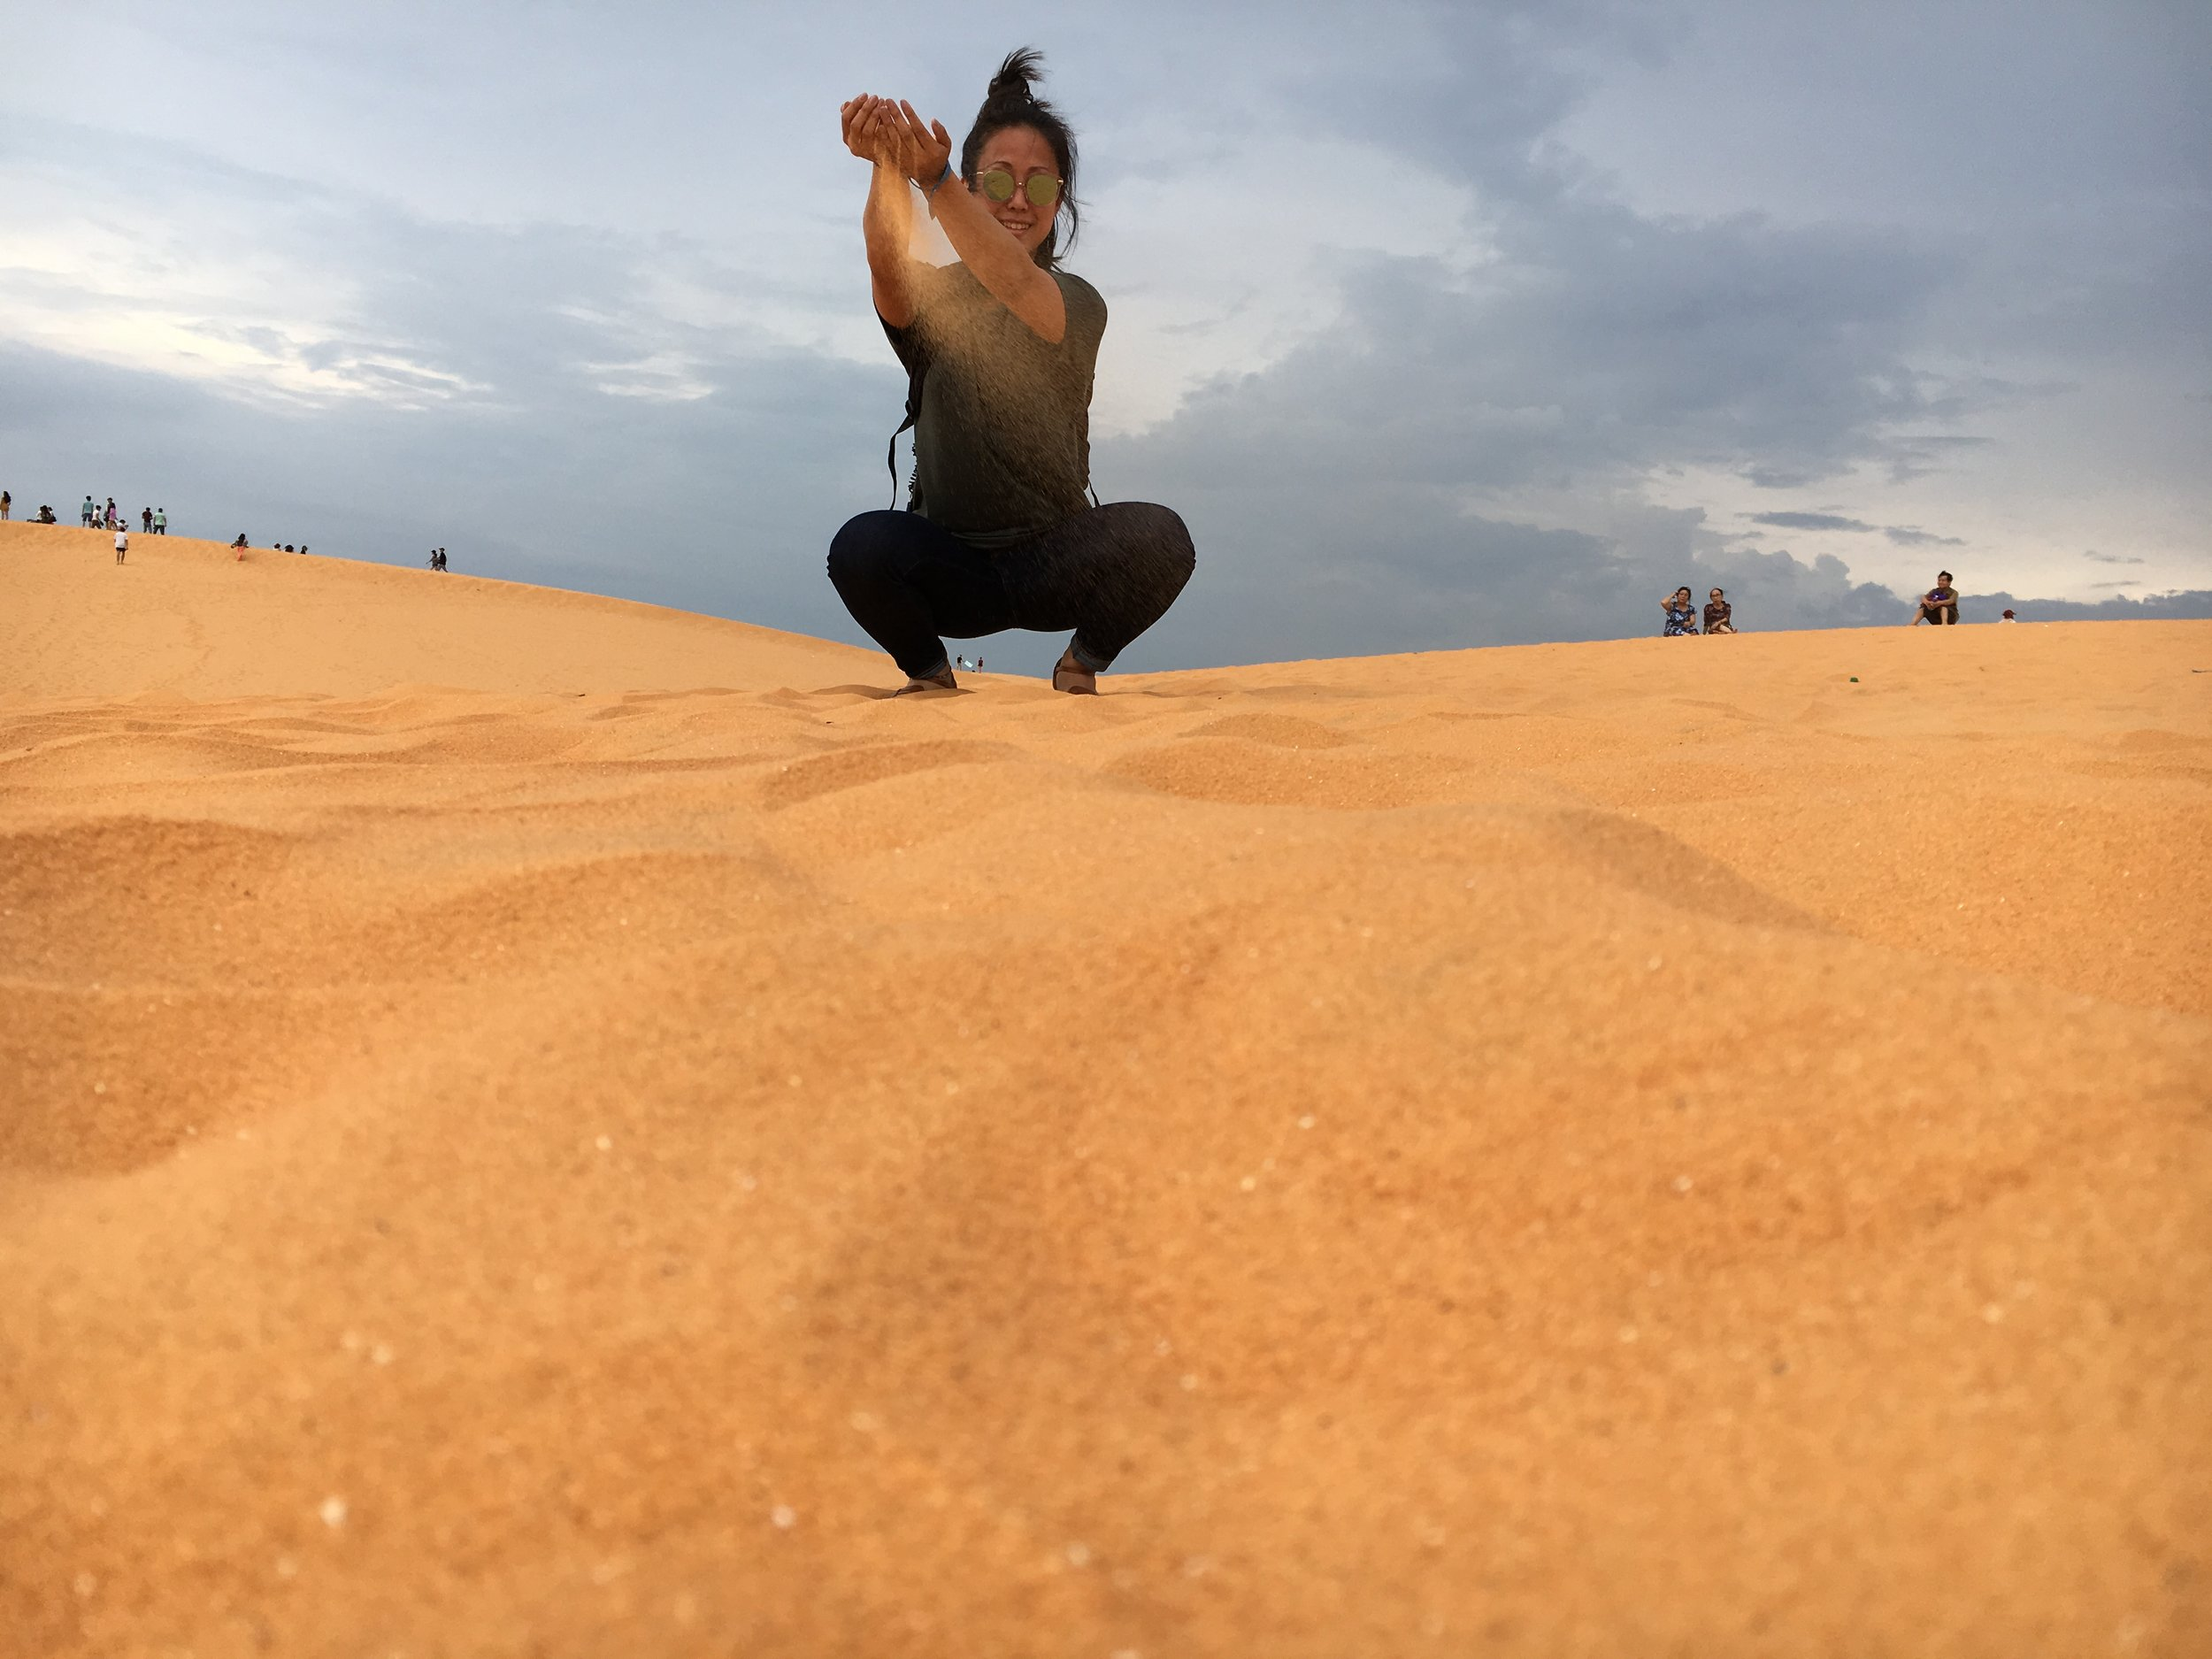 Playing with fairy dust at the Red Sand Dunes of Mũi Né.